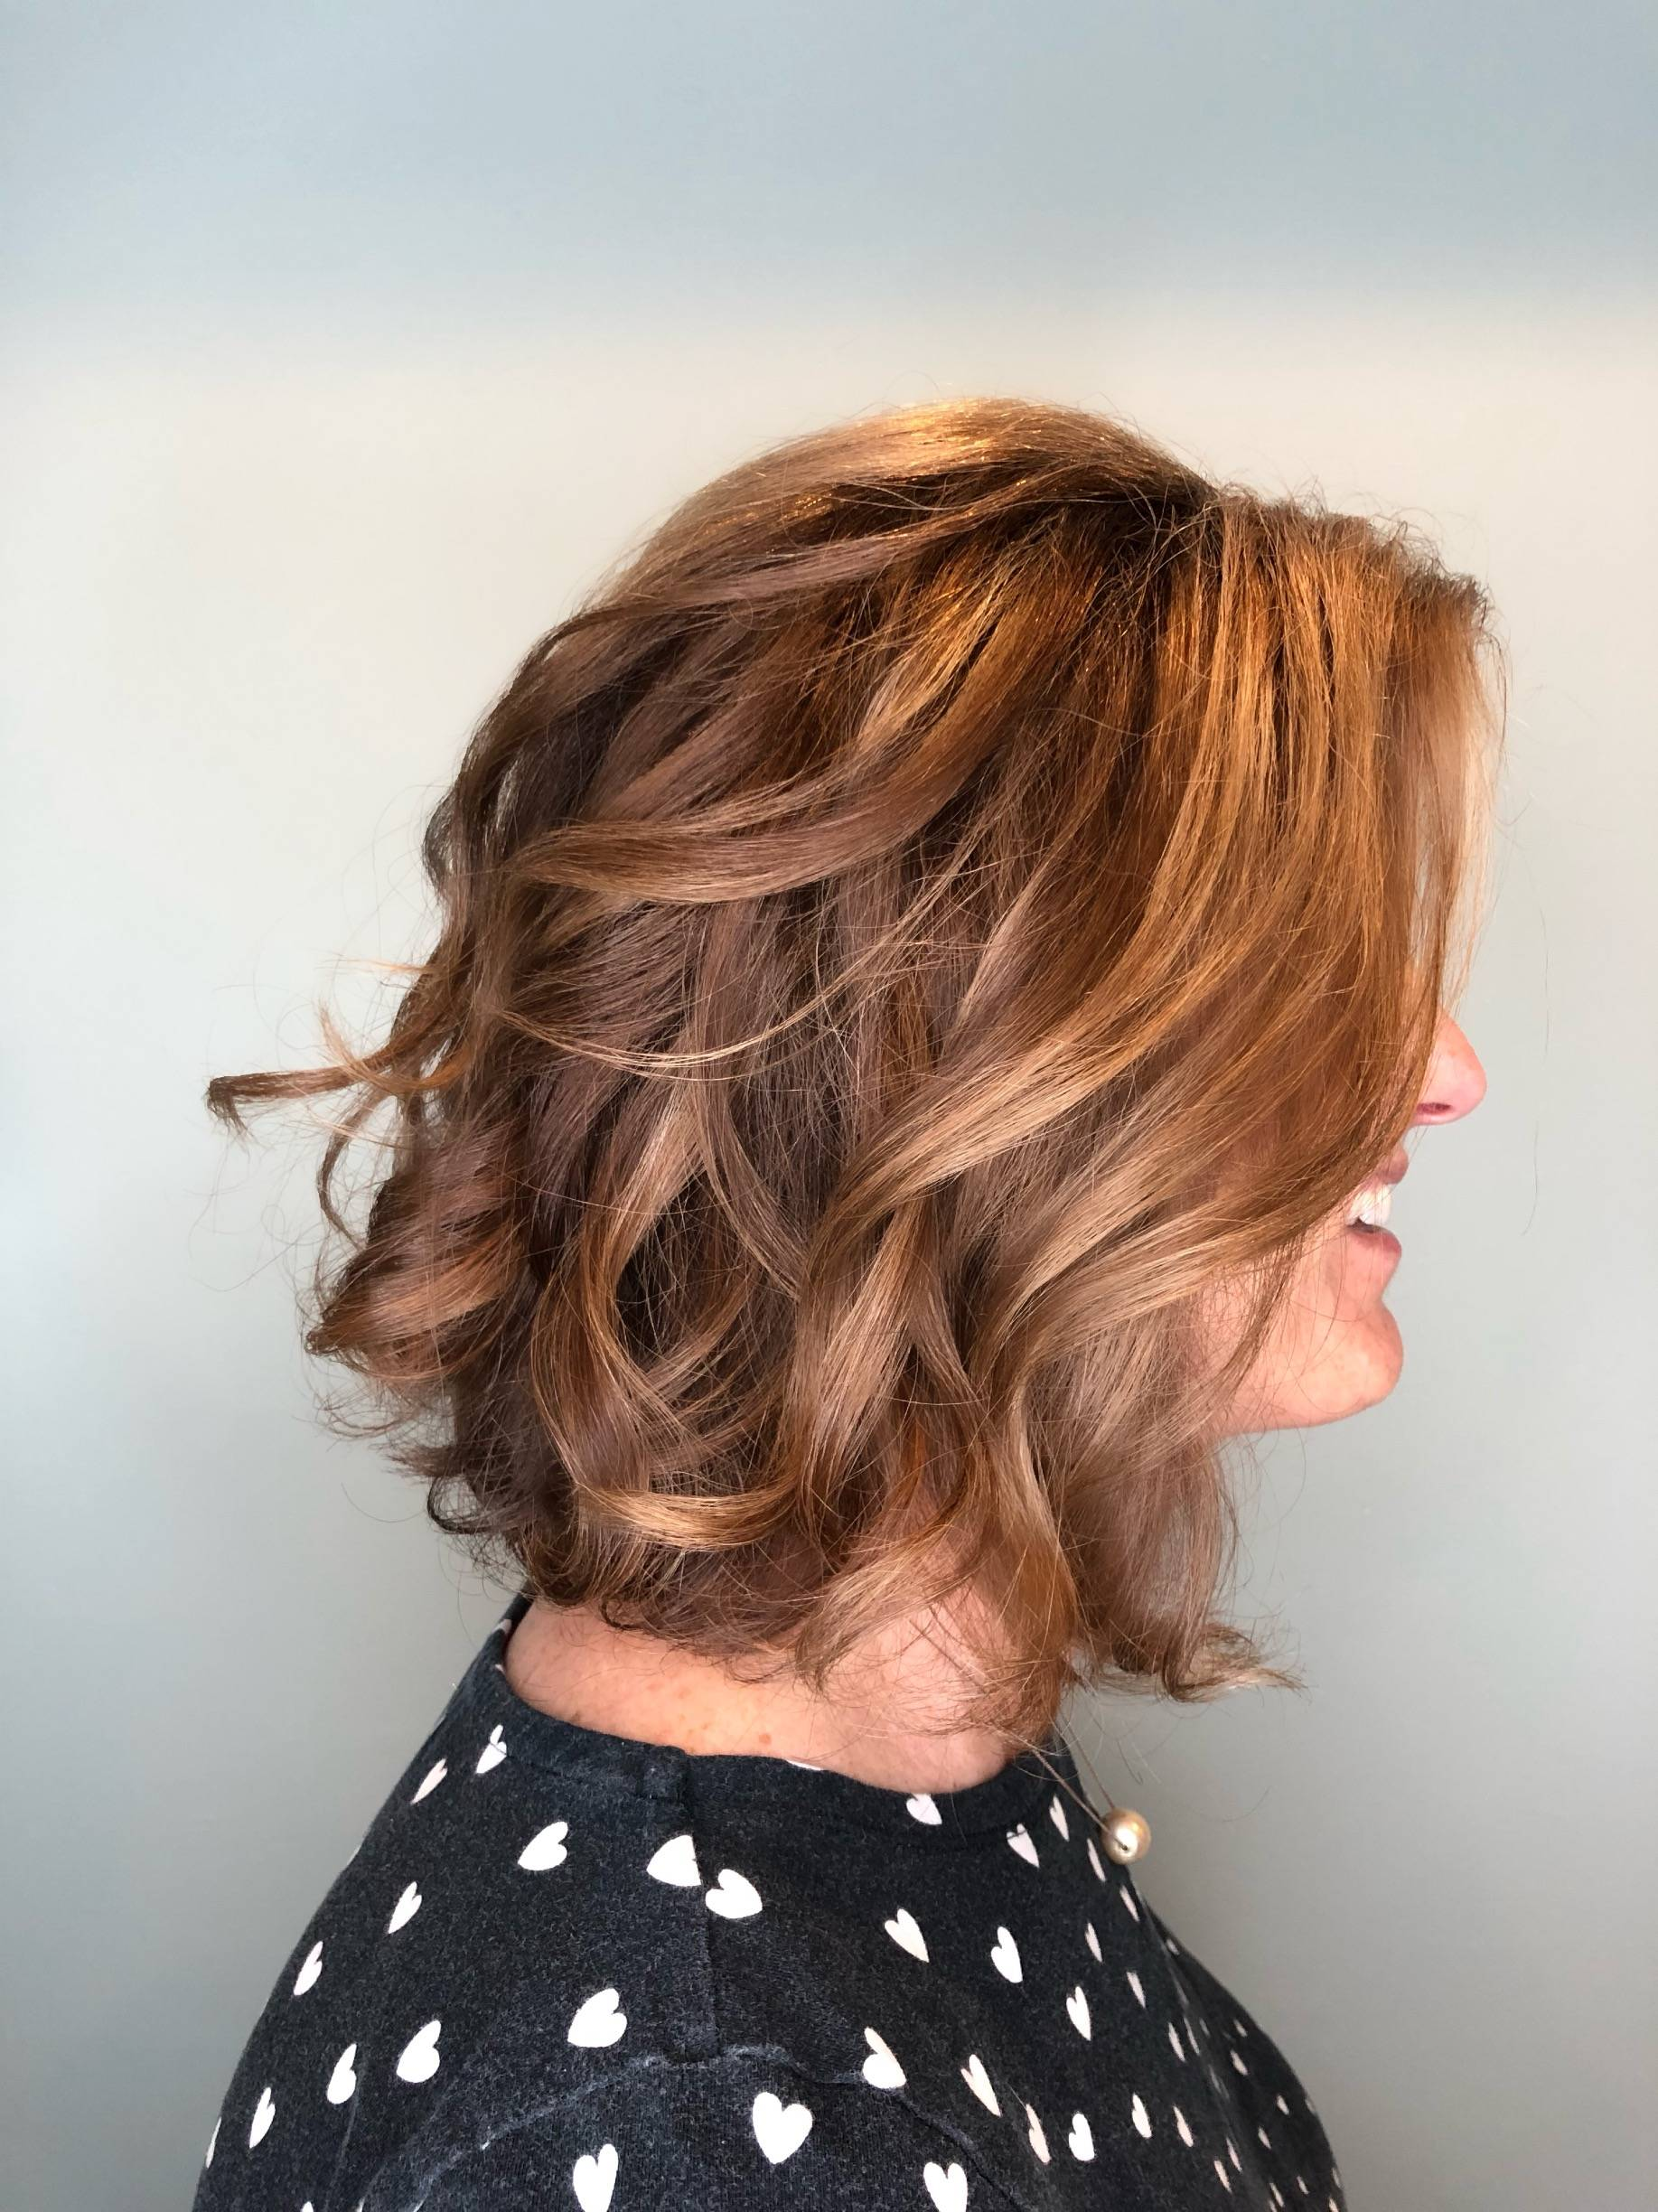 Caramel high and low lights with layered cut